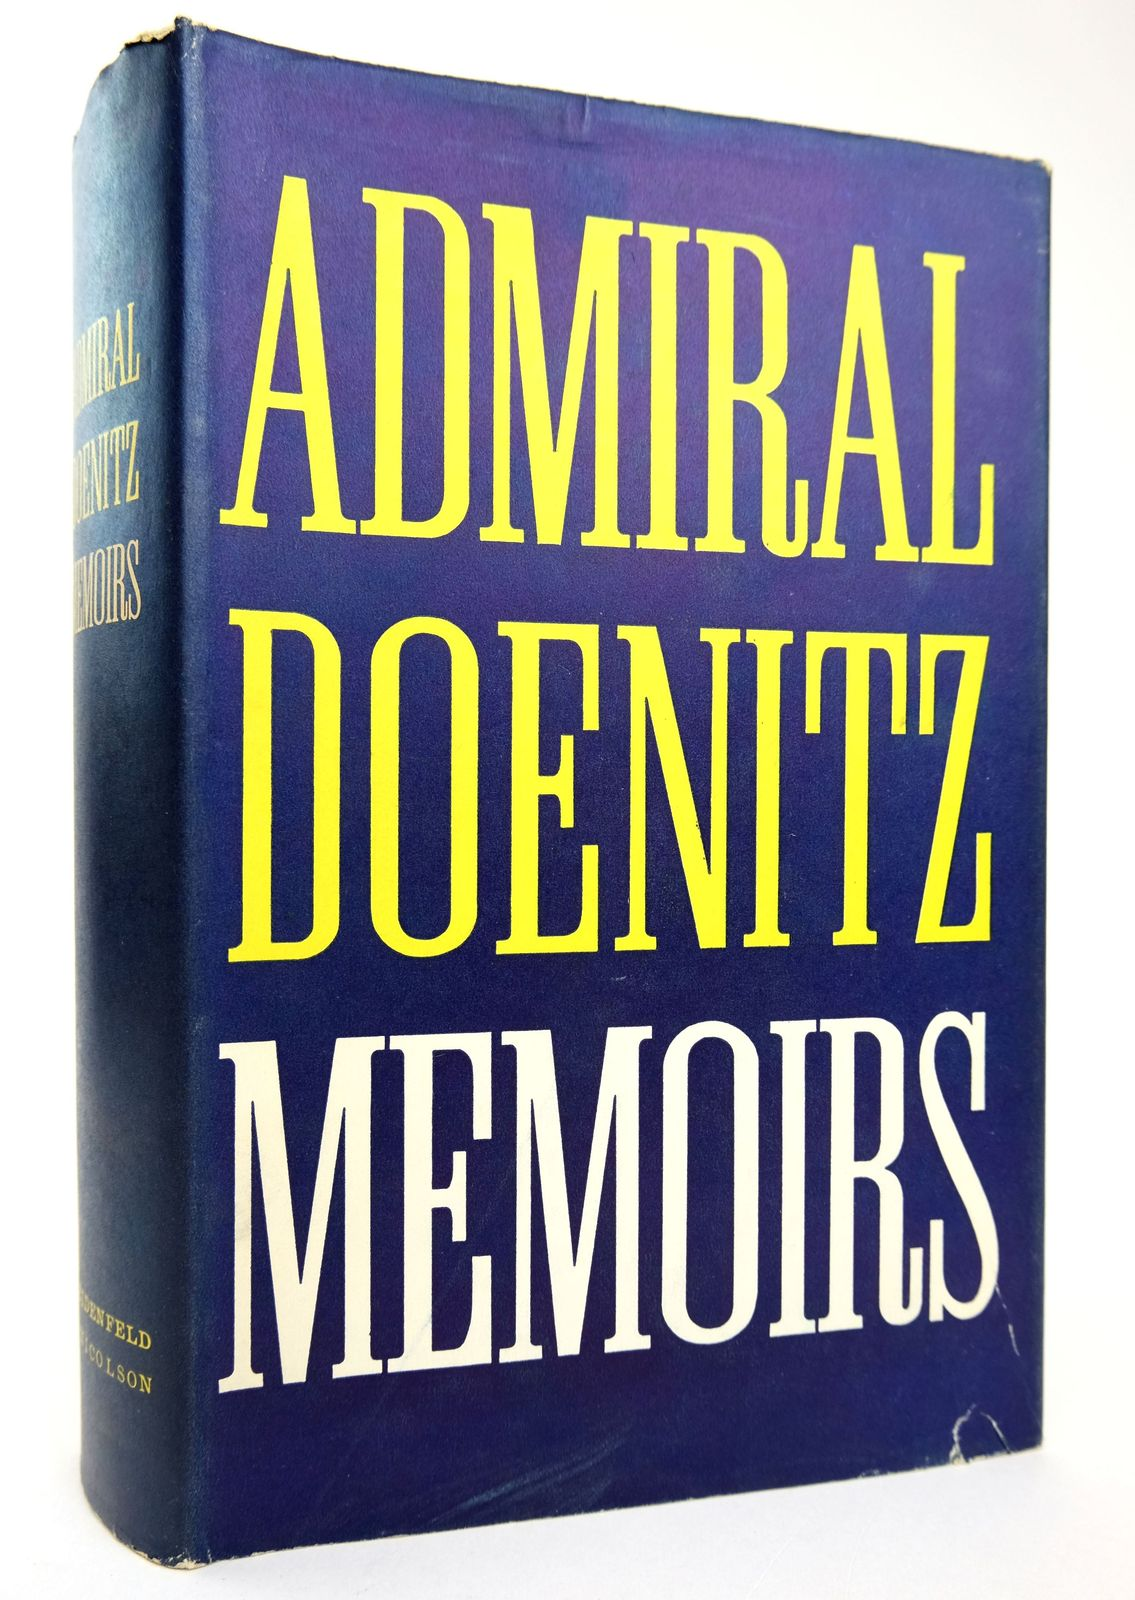 Photo of MEMOIRS: TEN YEARS AND TWENTY DAYS written by Doenitz, Admiral published by Weidenfeld and Nicolson (STOCK CODE: 1818894)  for sale by Stella & Rose's Books